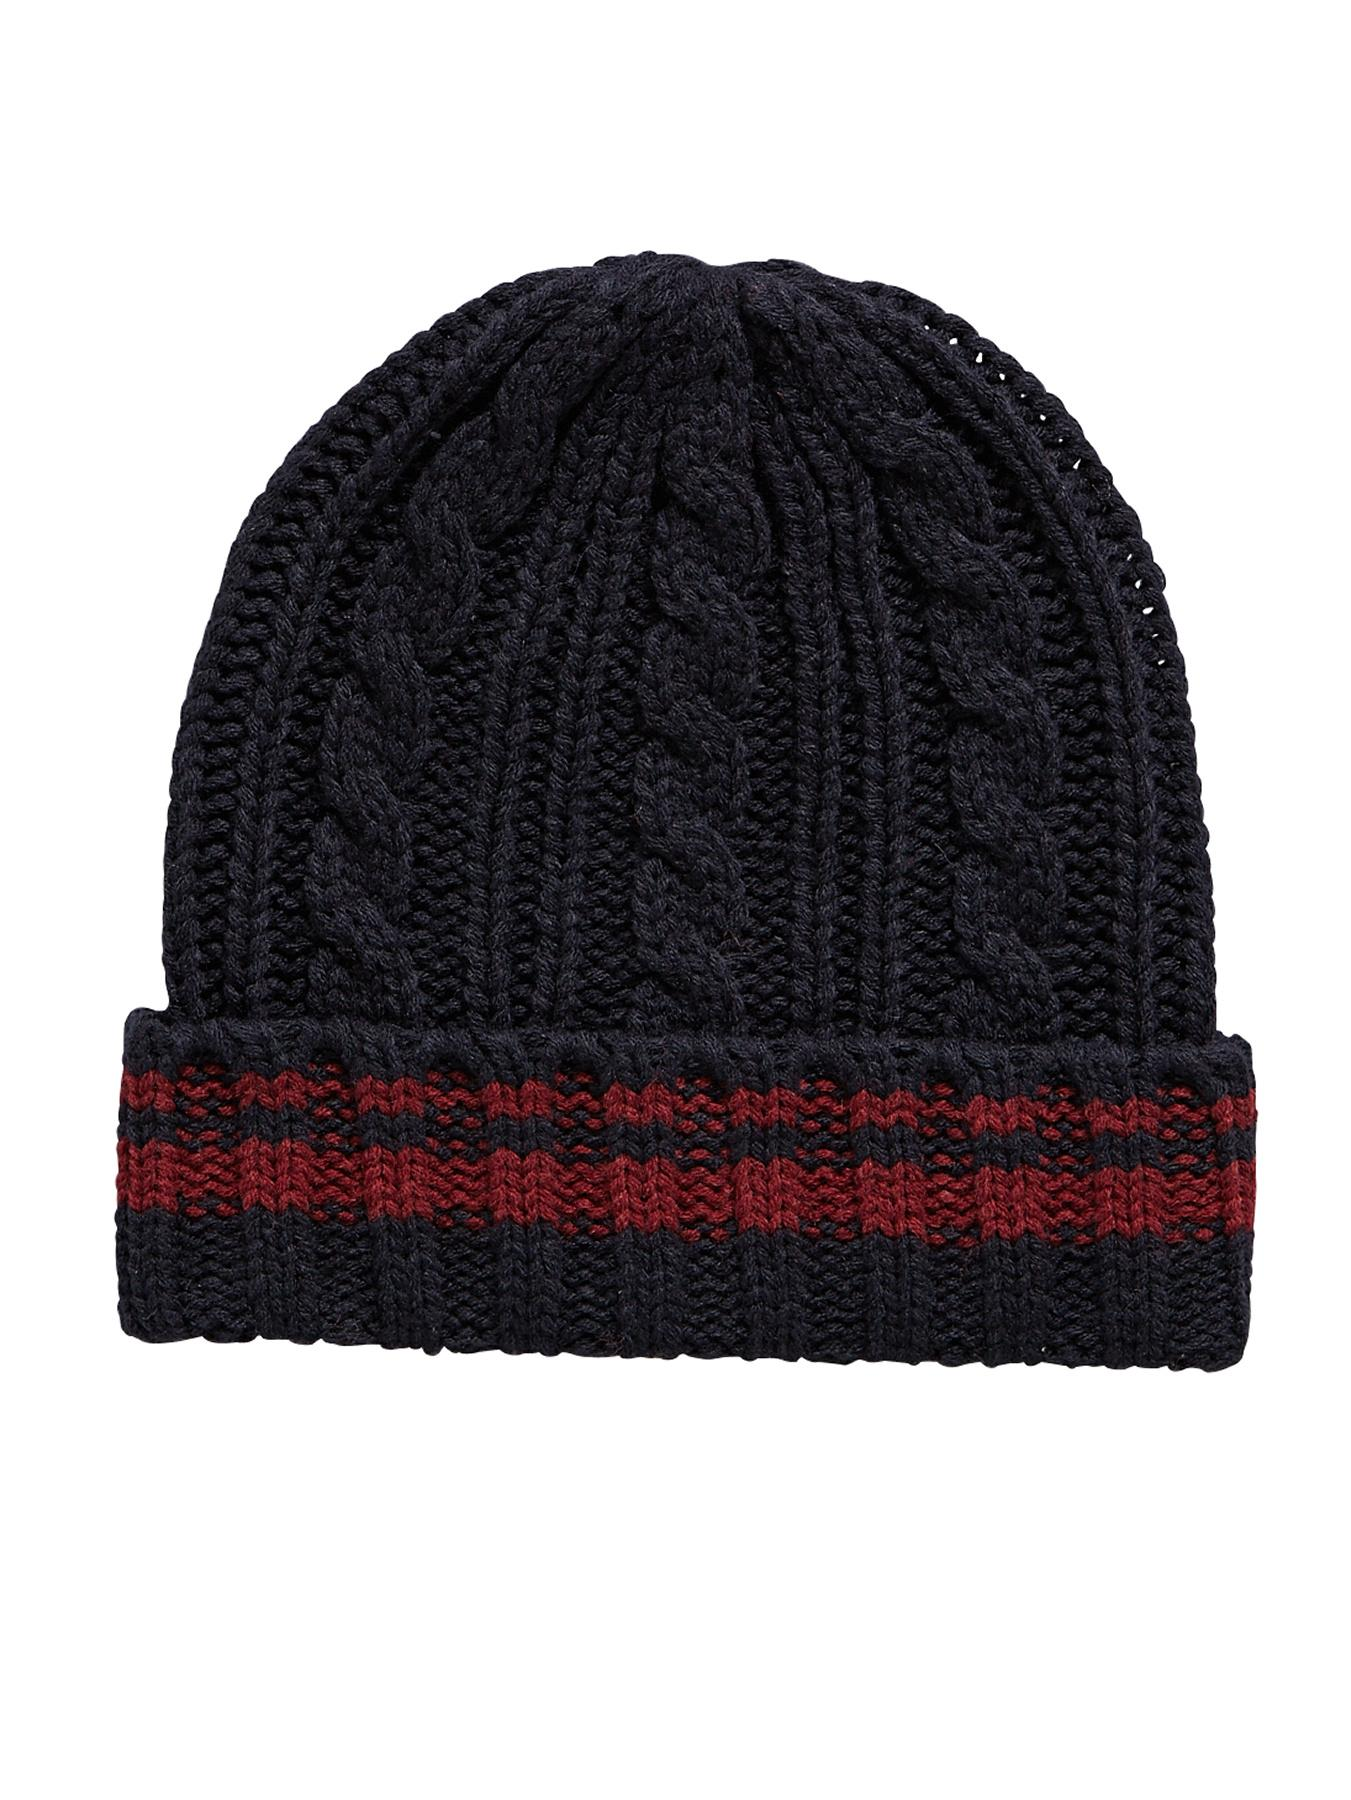 Mens Basic Beanie, Grey at Littlewoods